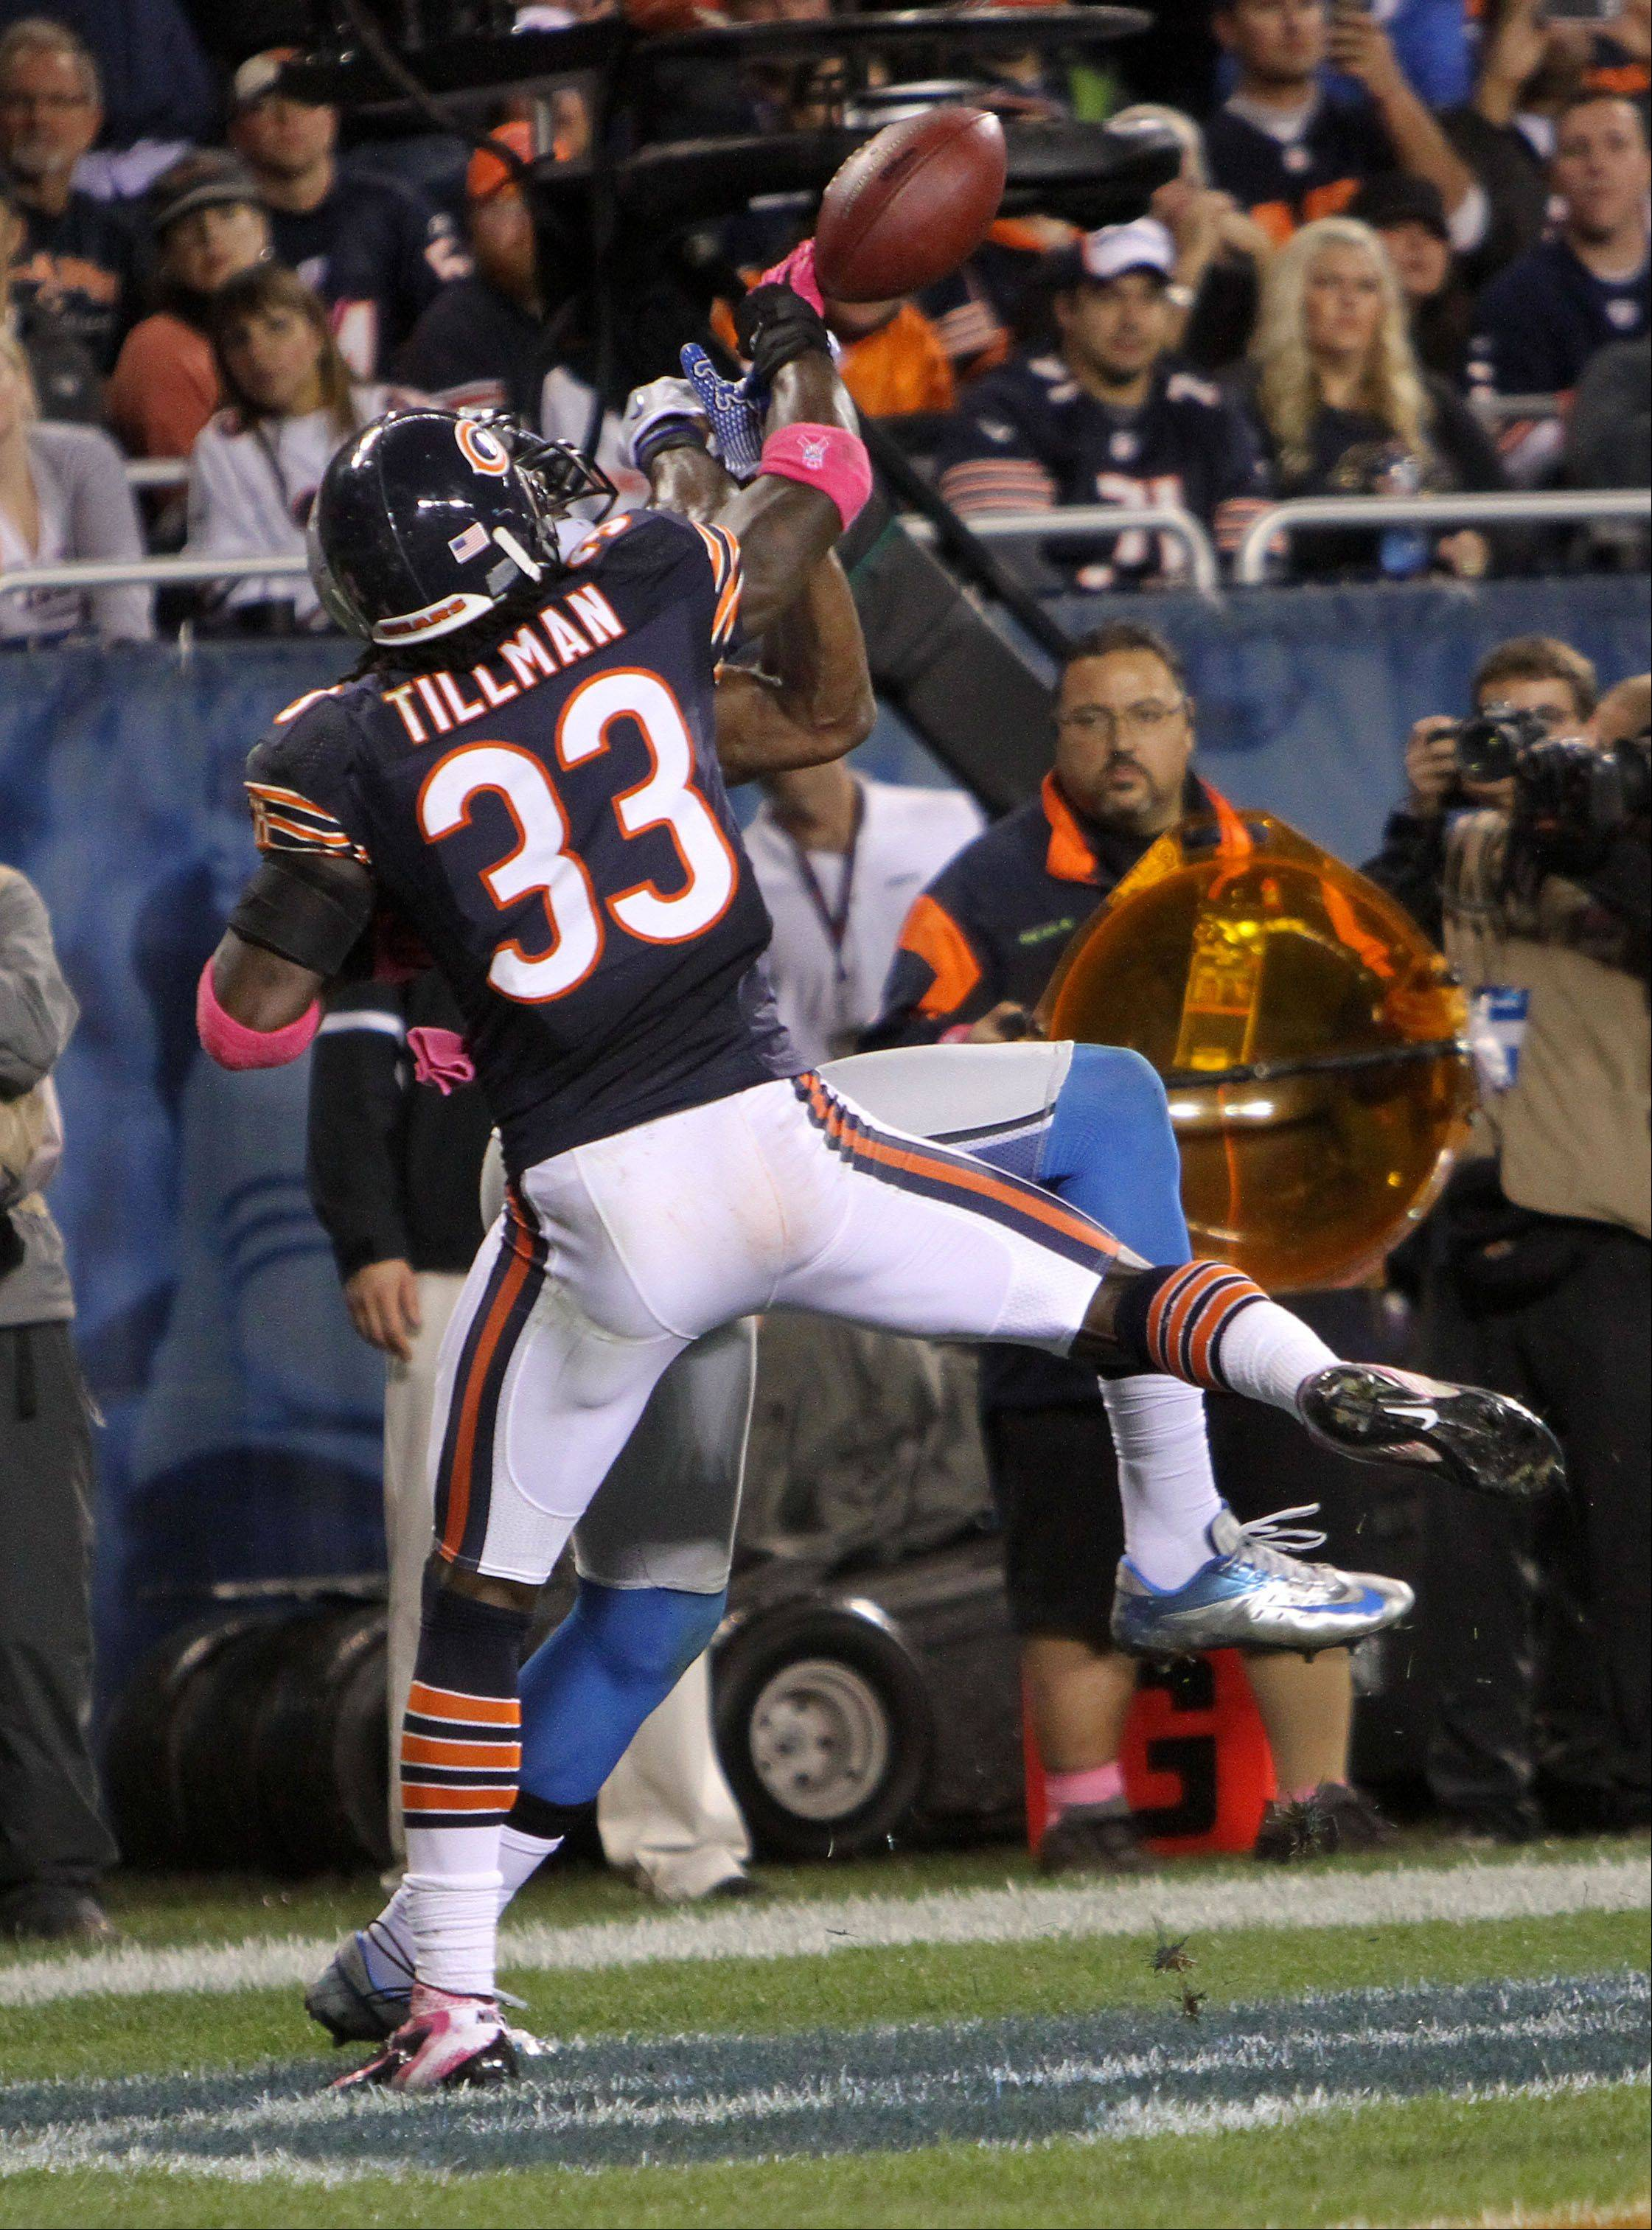 Chicago Bears cornerback Charles Tillman breaks up a pass play in the end zone.